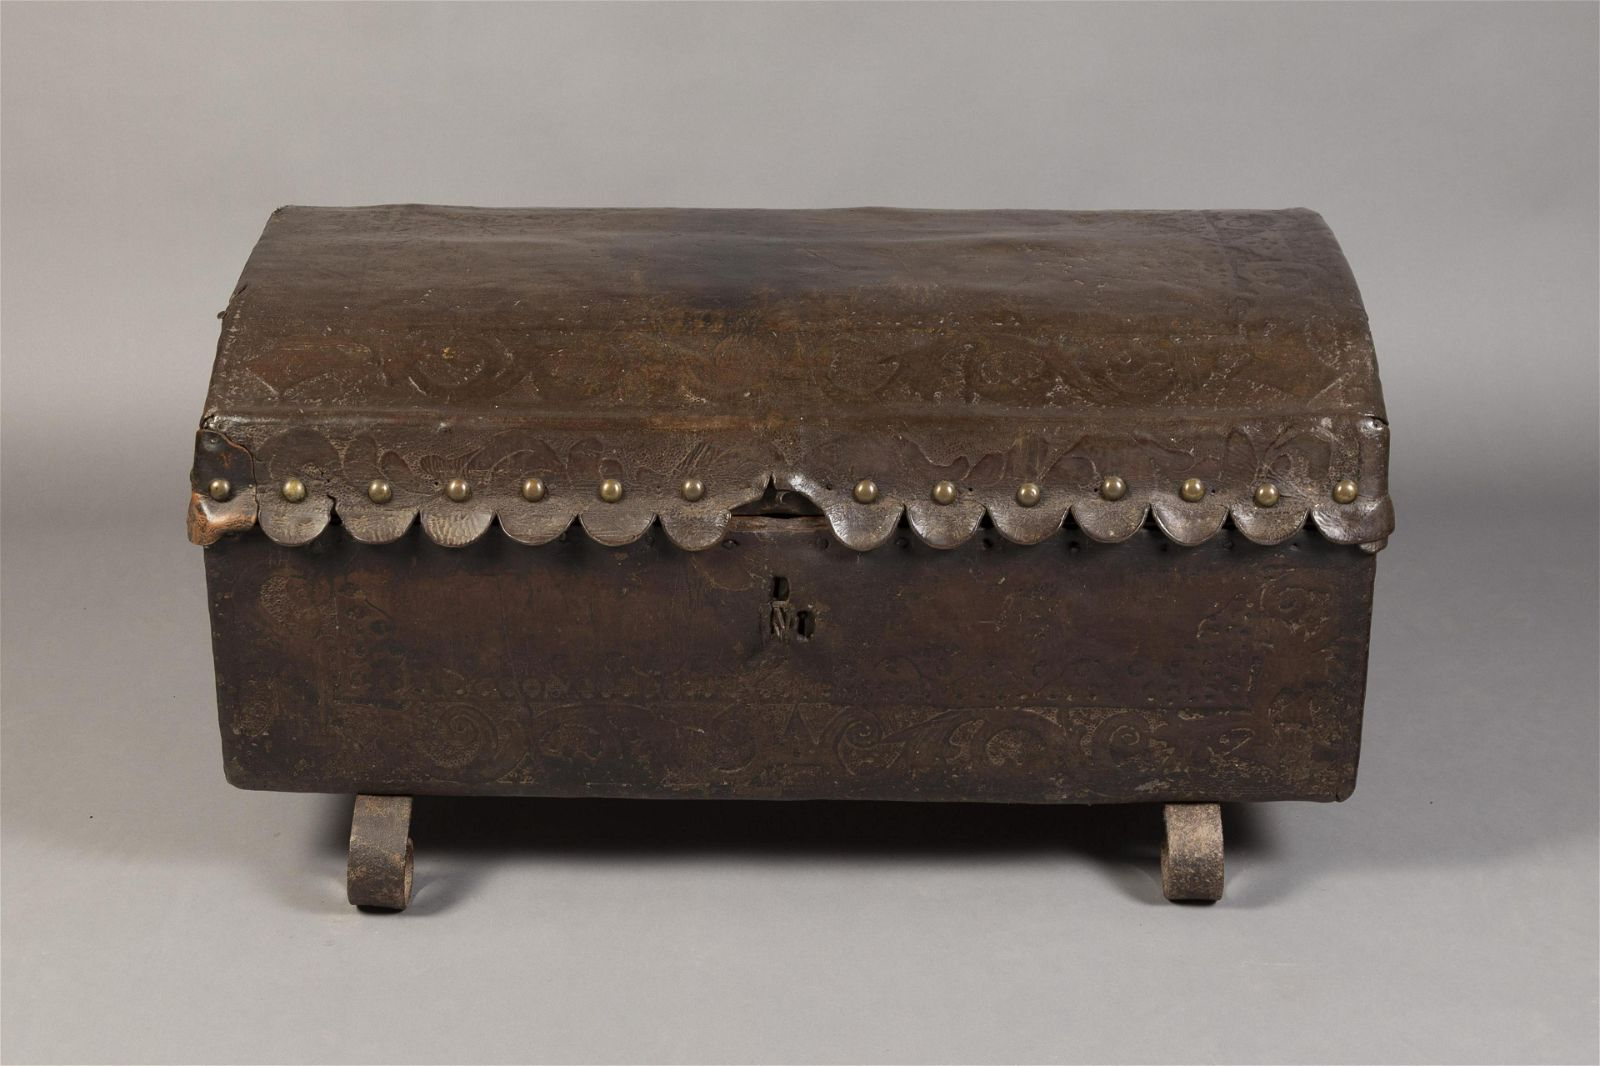 Spanish Colonial, Peru, Tooled Leather and Cedar Chest